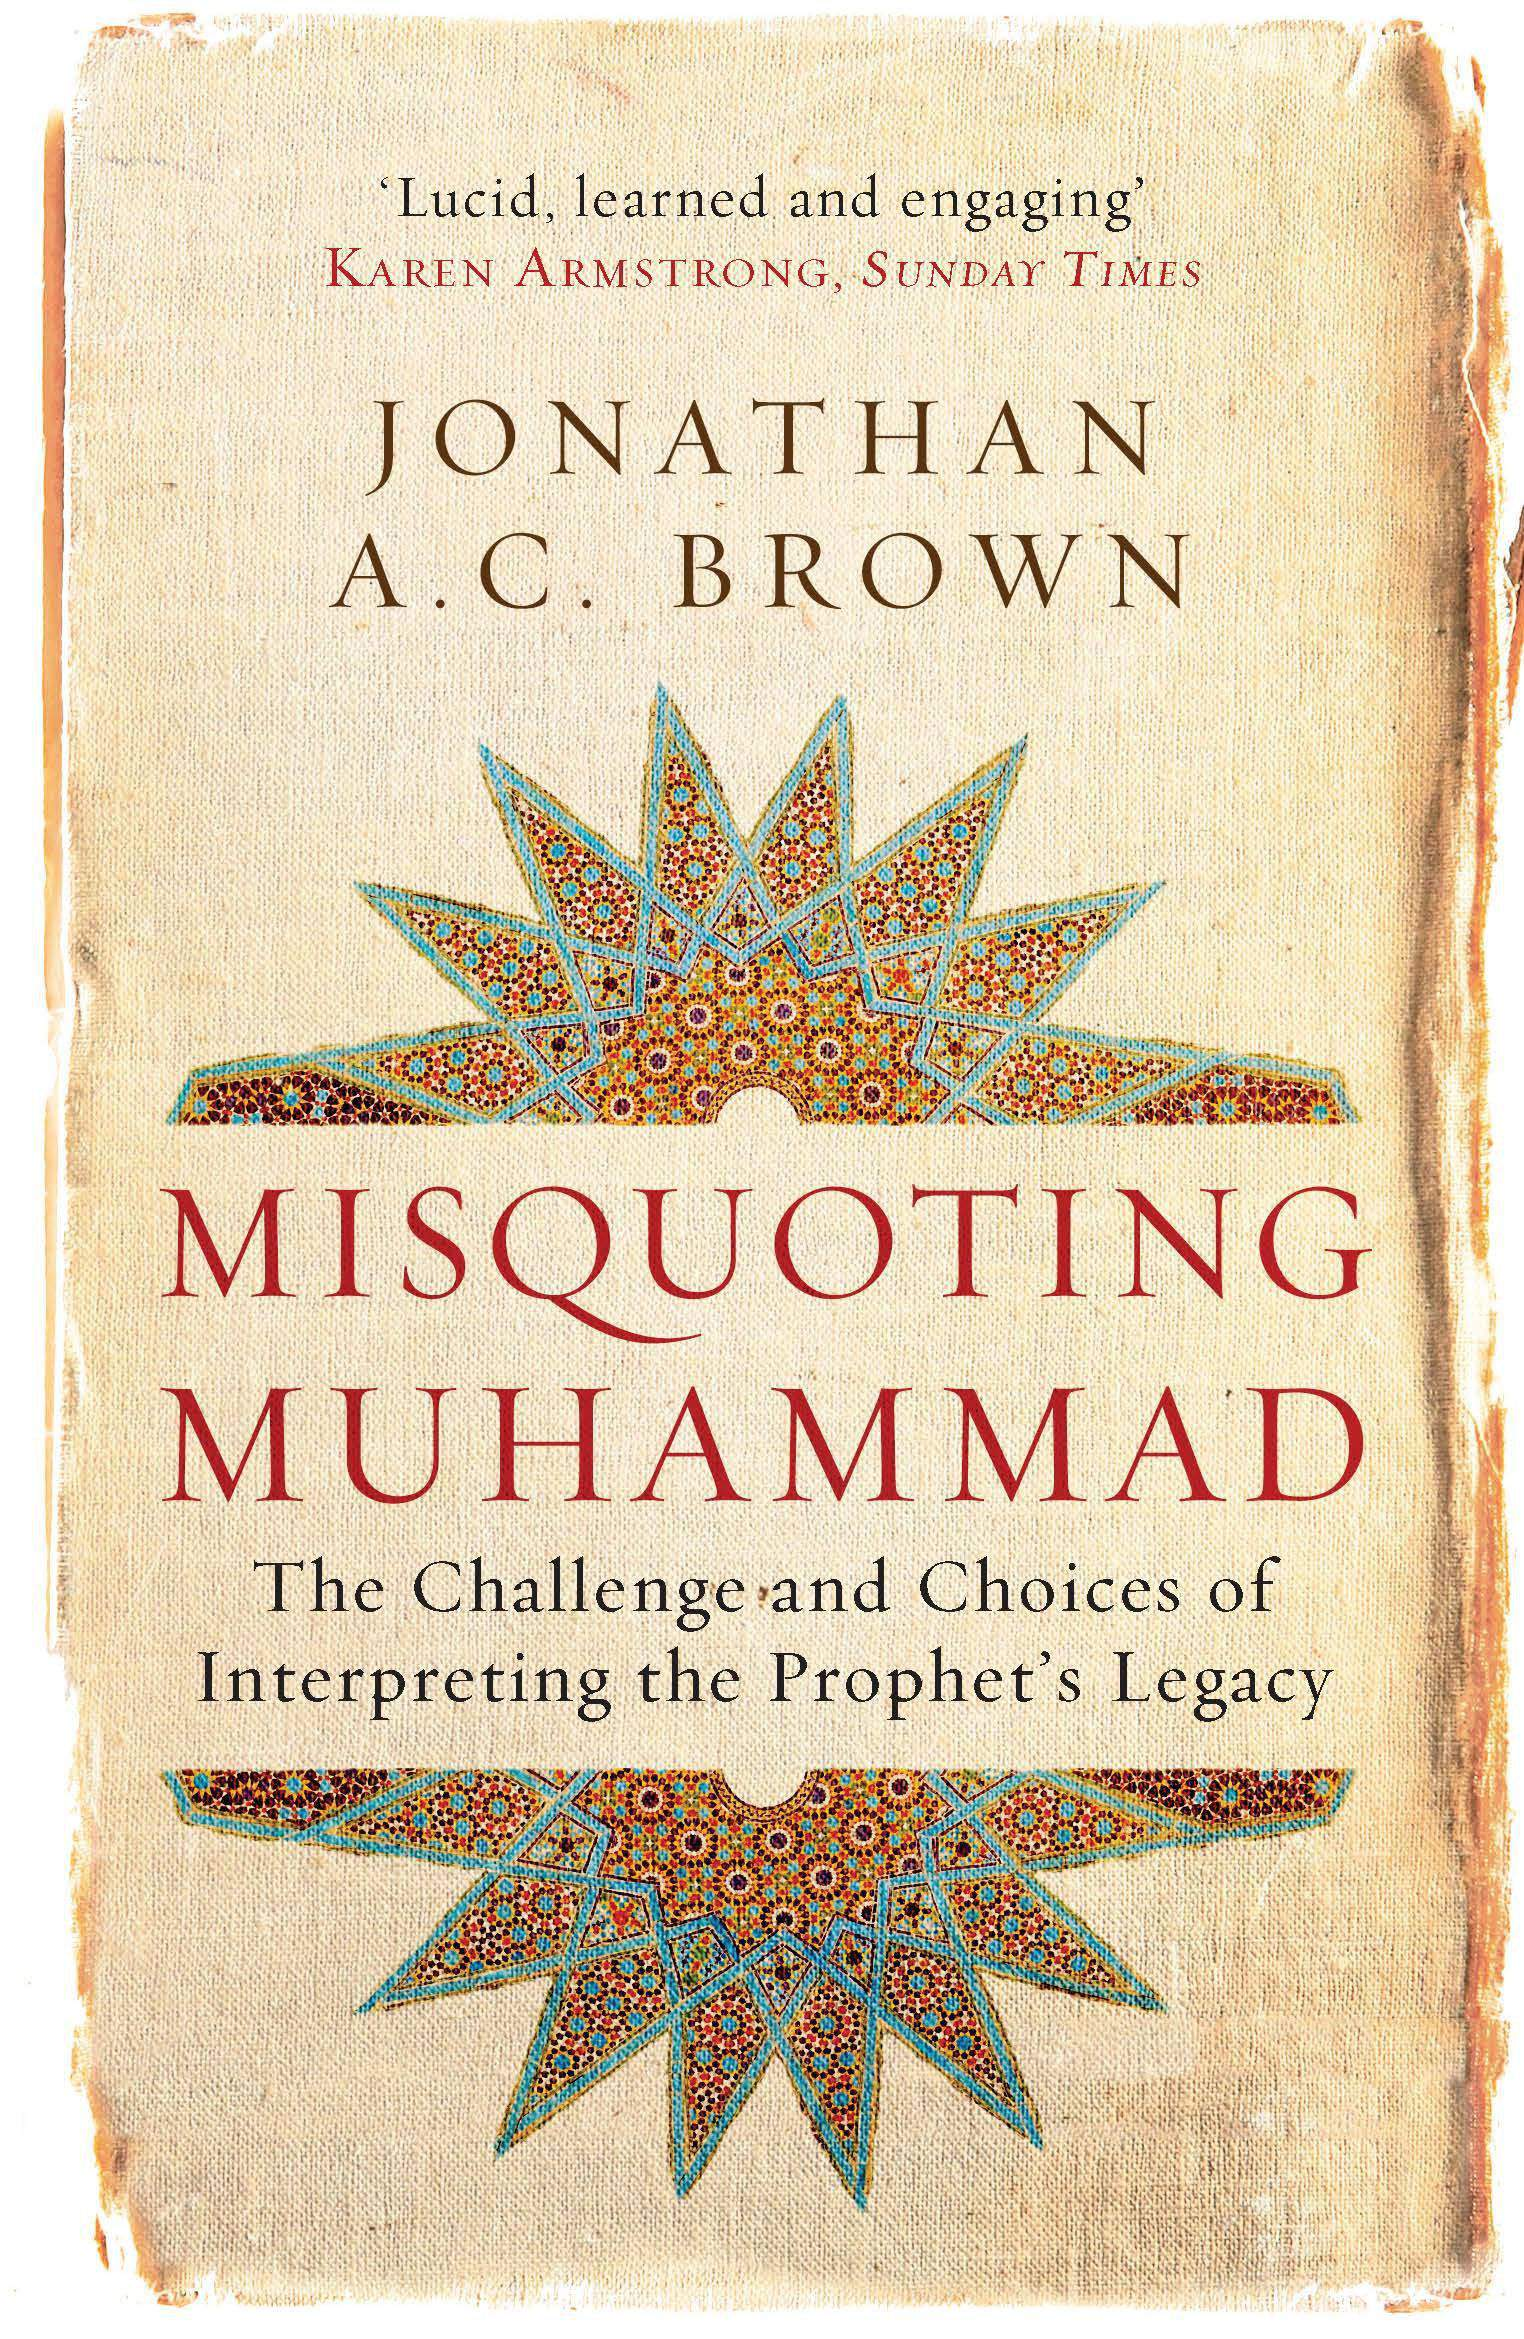 Misquoting Muhammad The Challenge and Choices of Interpreting the Prophets Legacy